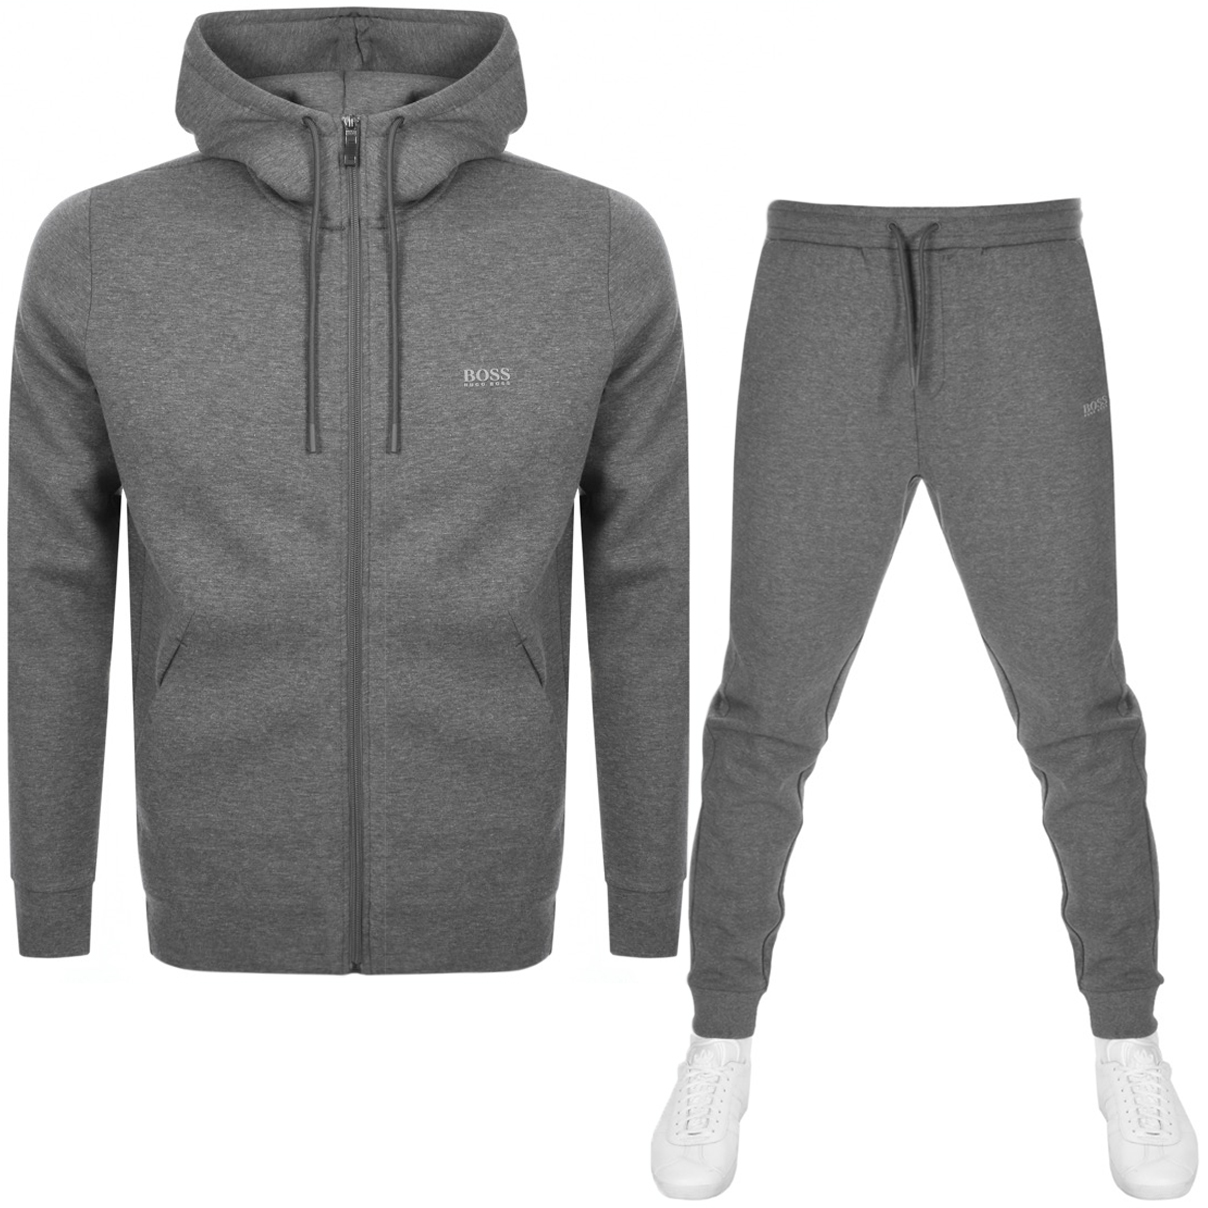 4c0317c1 Product Image for BOSS Athleisure Tracksuit Grey